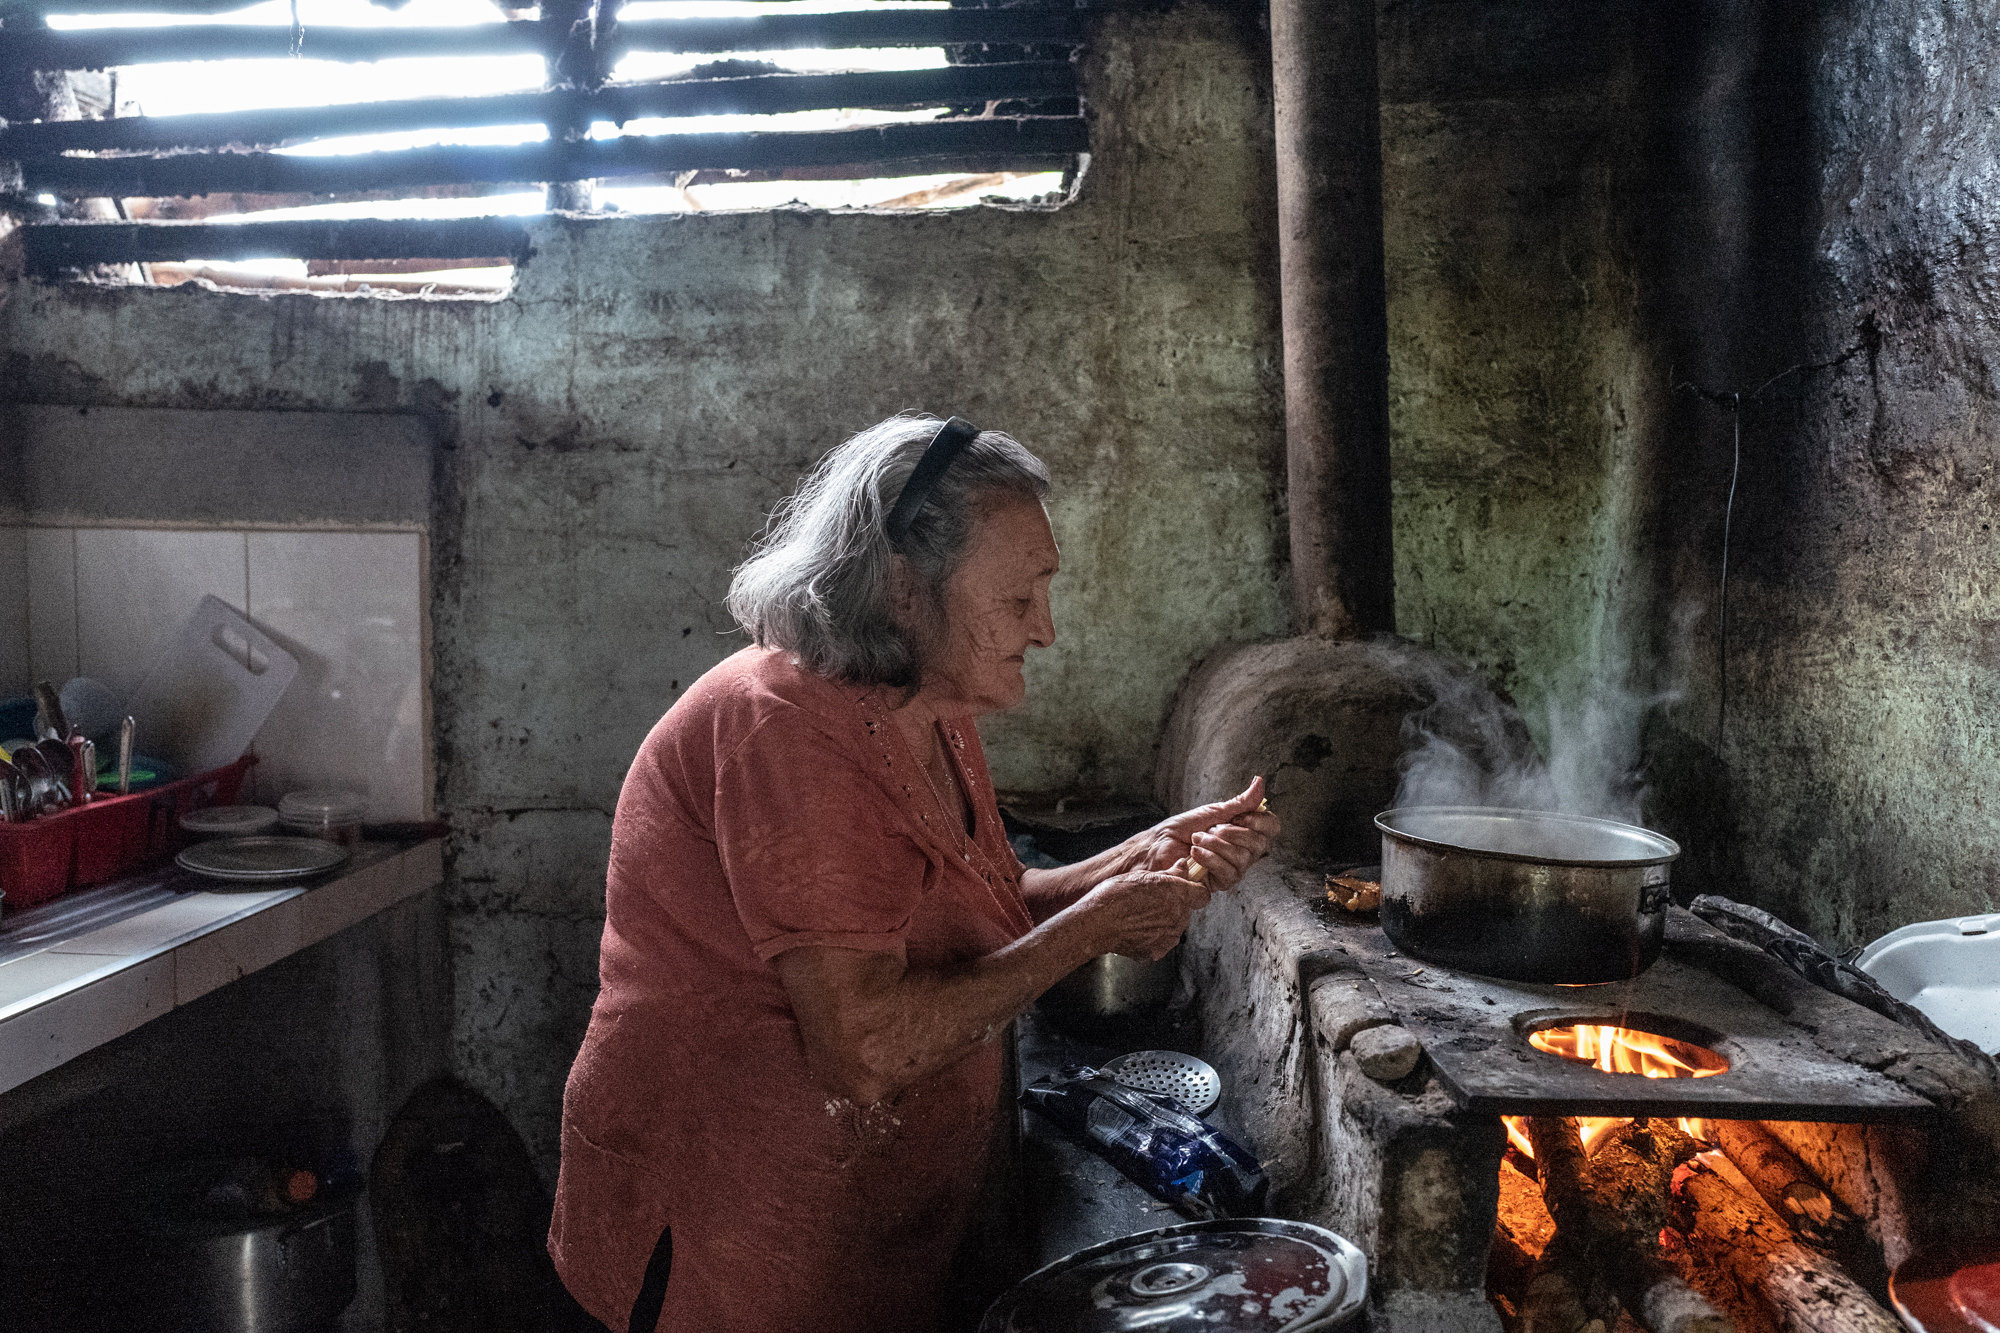 Mercedes Triviño cooks diner at her home in Ricaurte, Valle del Cauca on July 30, 2018.